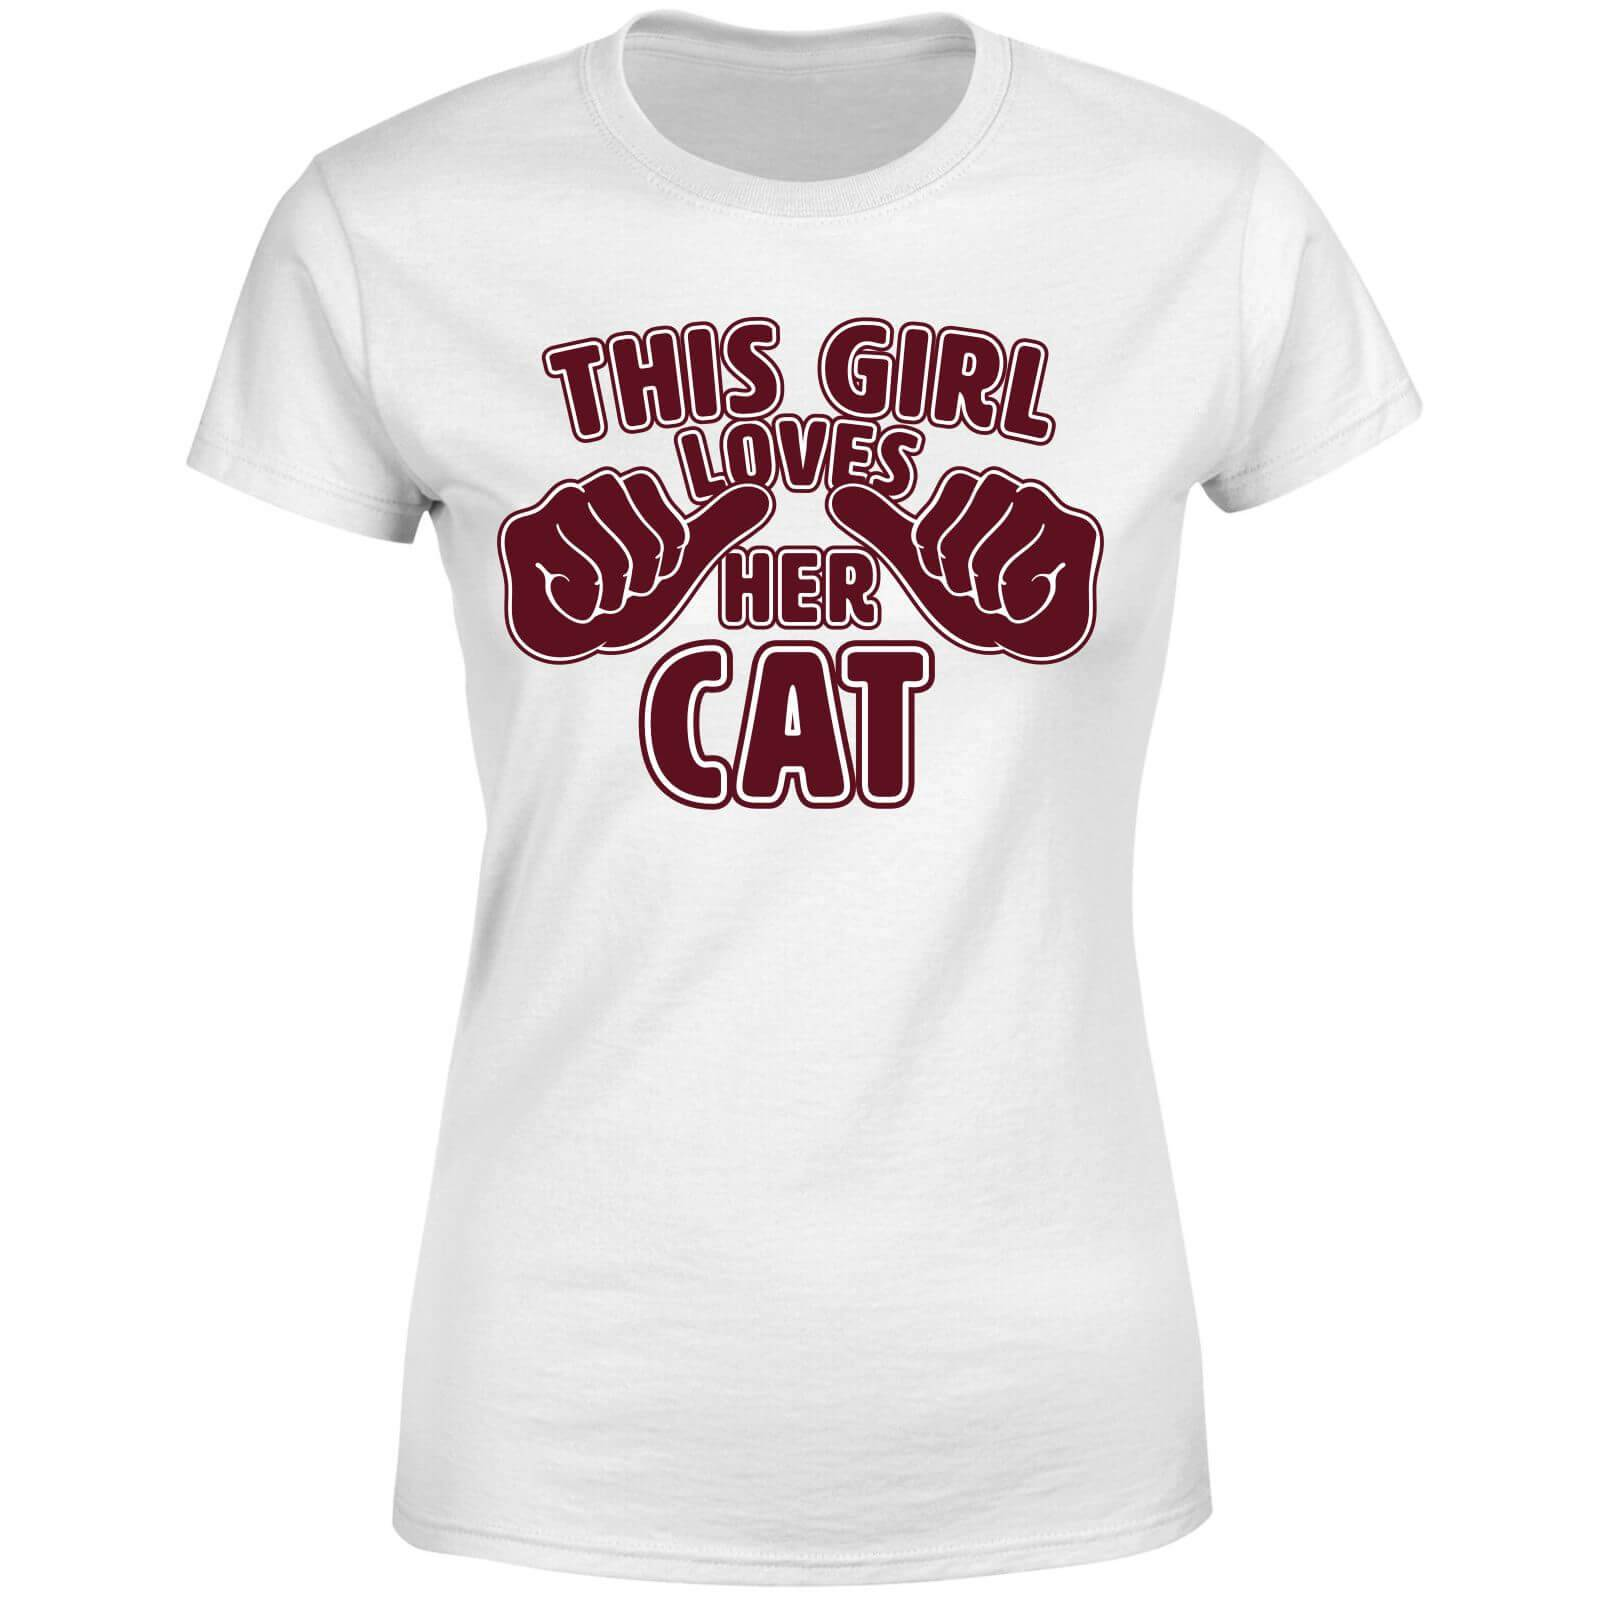 The Pet Collection This Girl Loves Her Cat Women's T-Shirt - White - 5XL - White